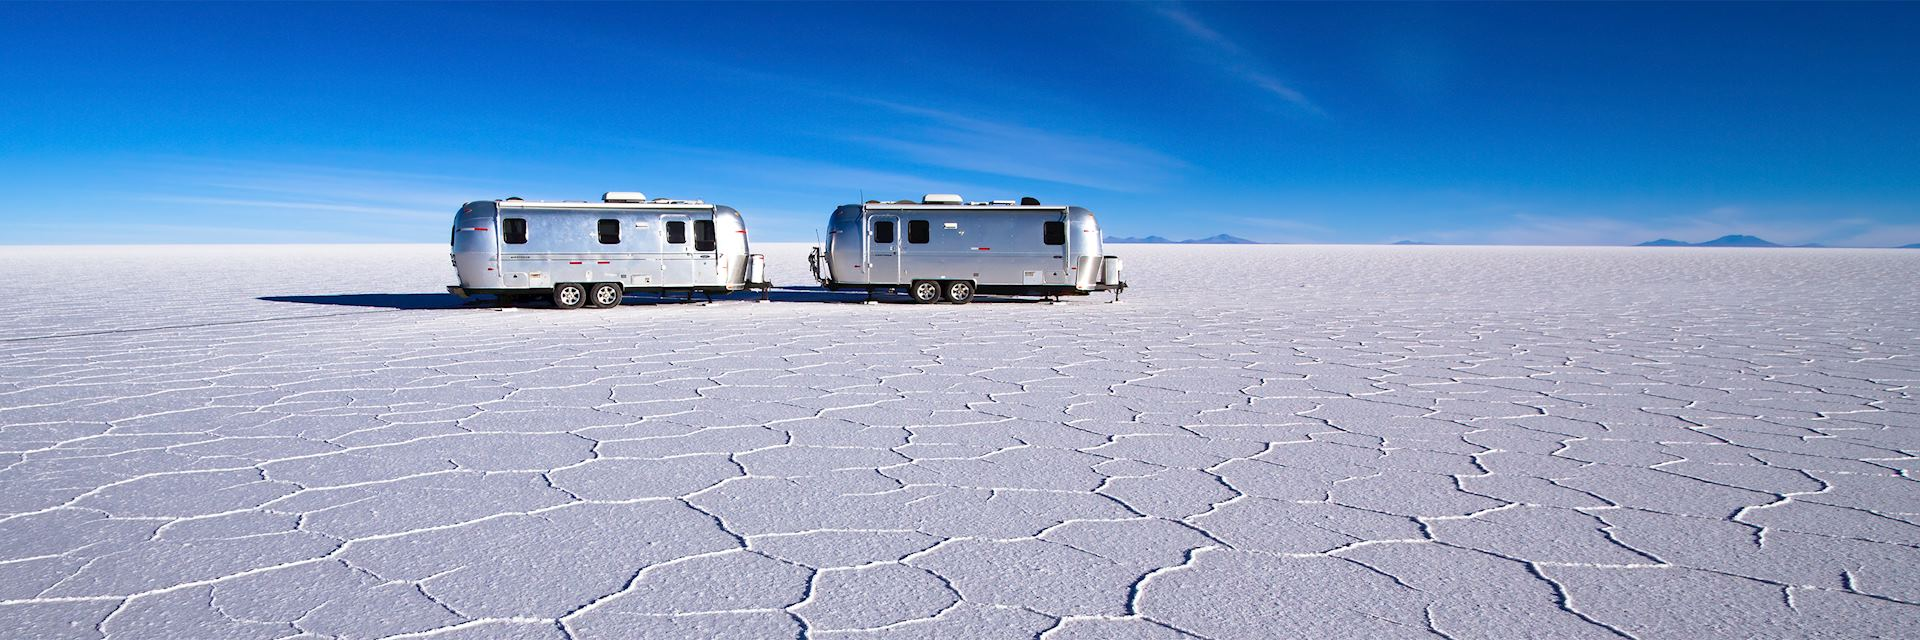 Airstream campers in Salar de Uyuni